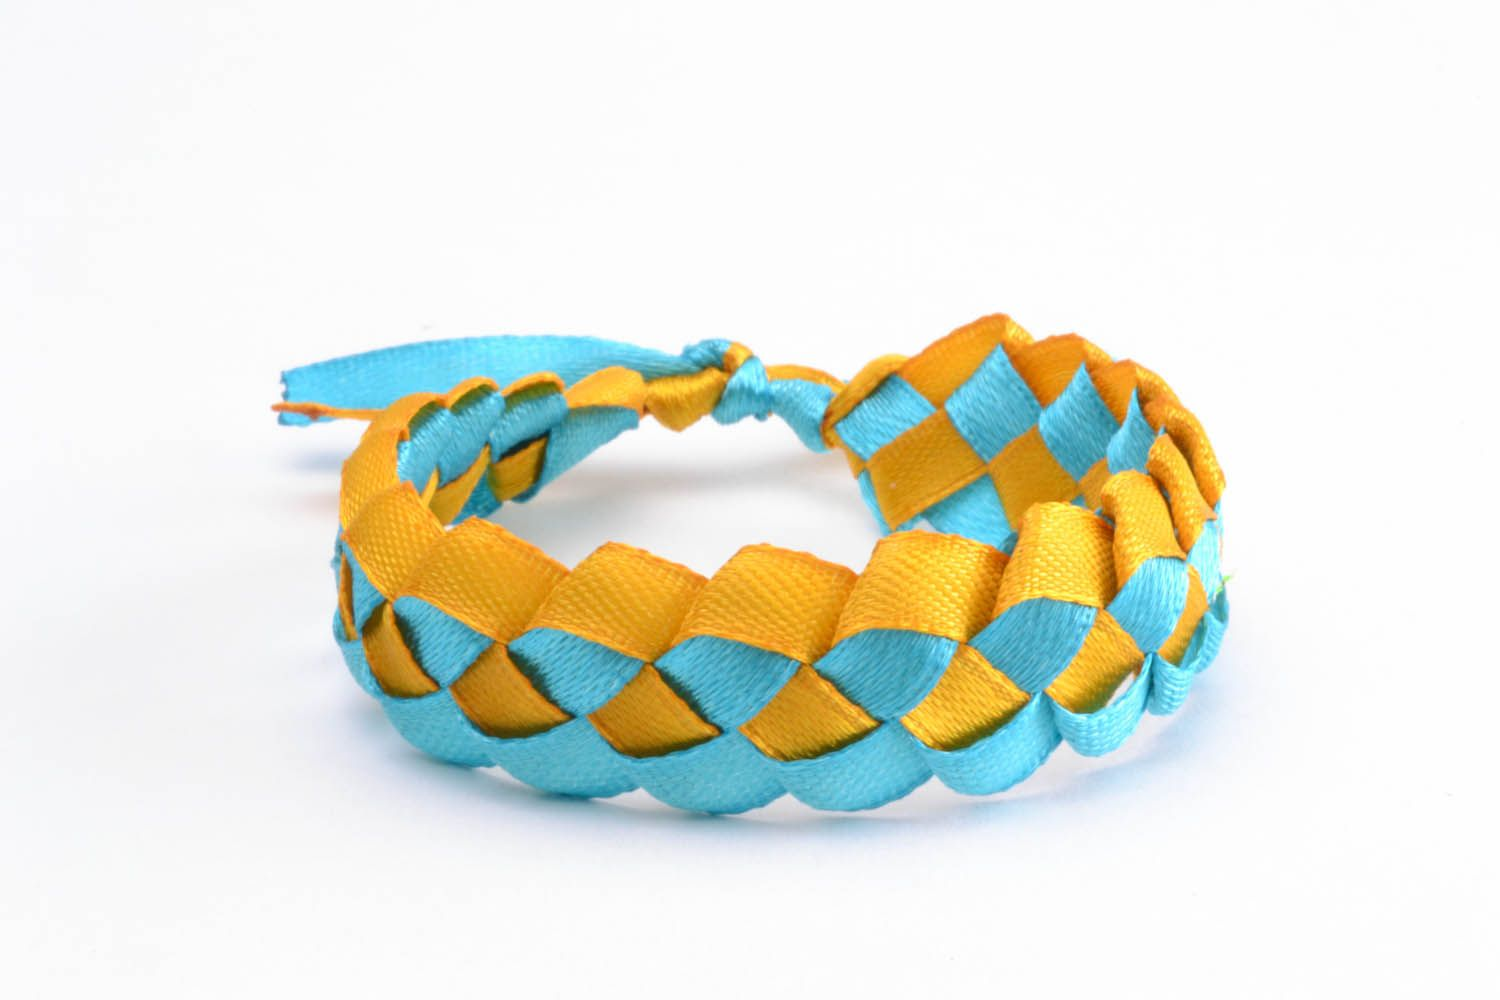 Bracelet made of colourful ribbons  photo 4